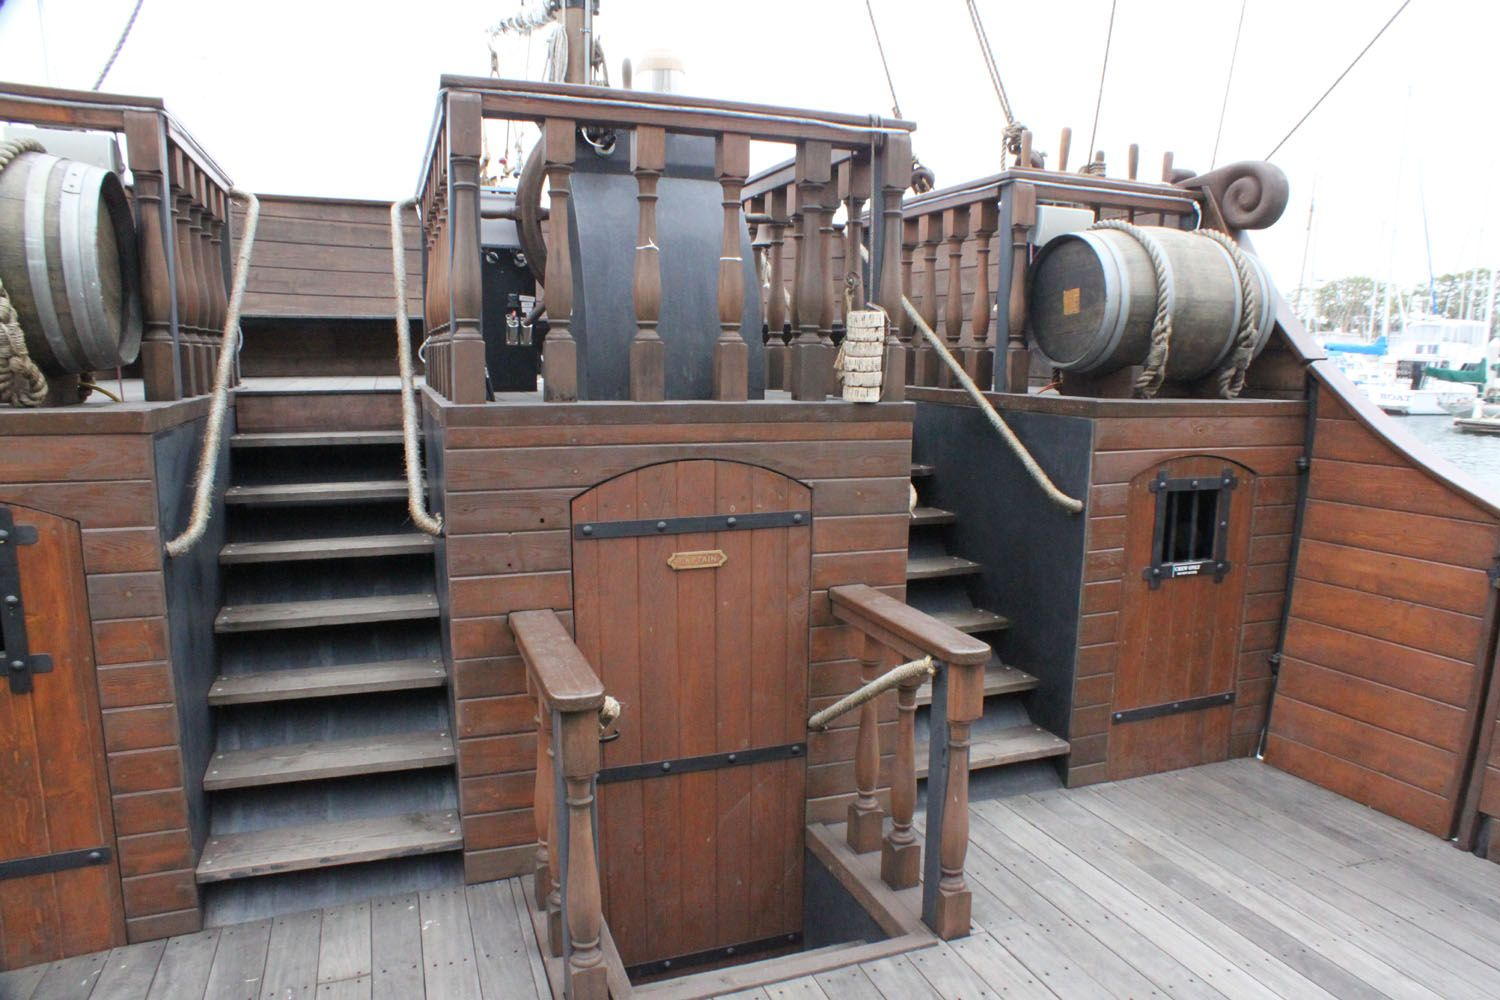 Another Pirate Ship Ship Deck Background Pirate Ship Sailing Ships Tall Ships